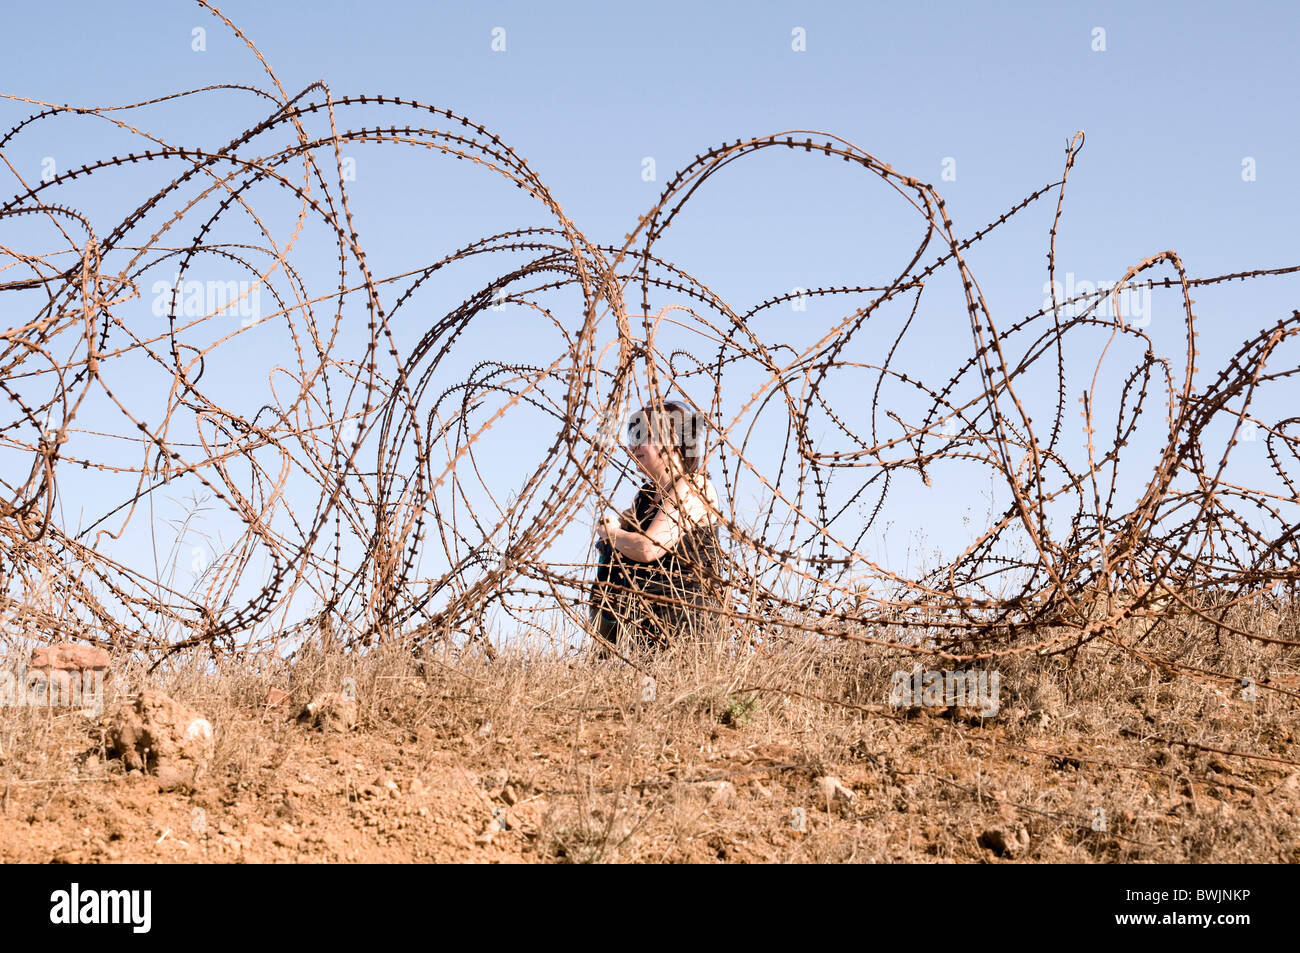 Woman, in her forties, confined by a Barbed wire fence - Stock Image